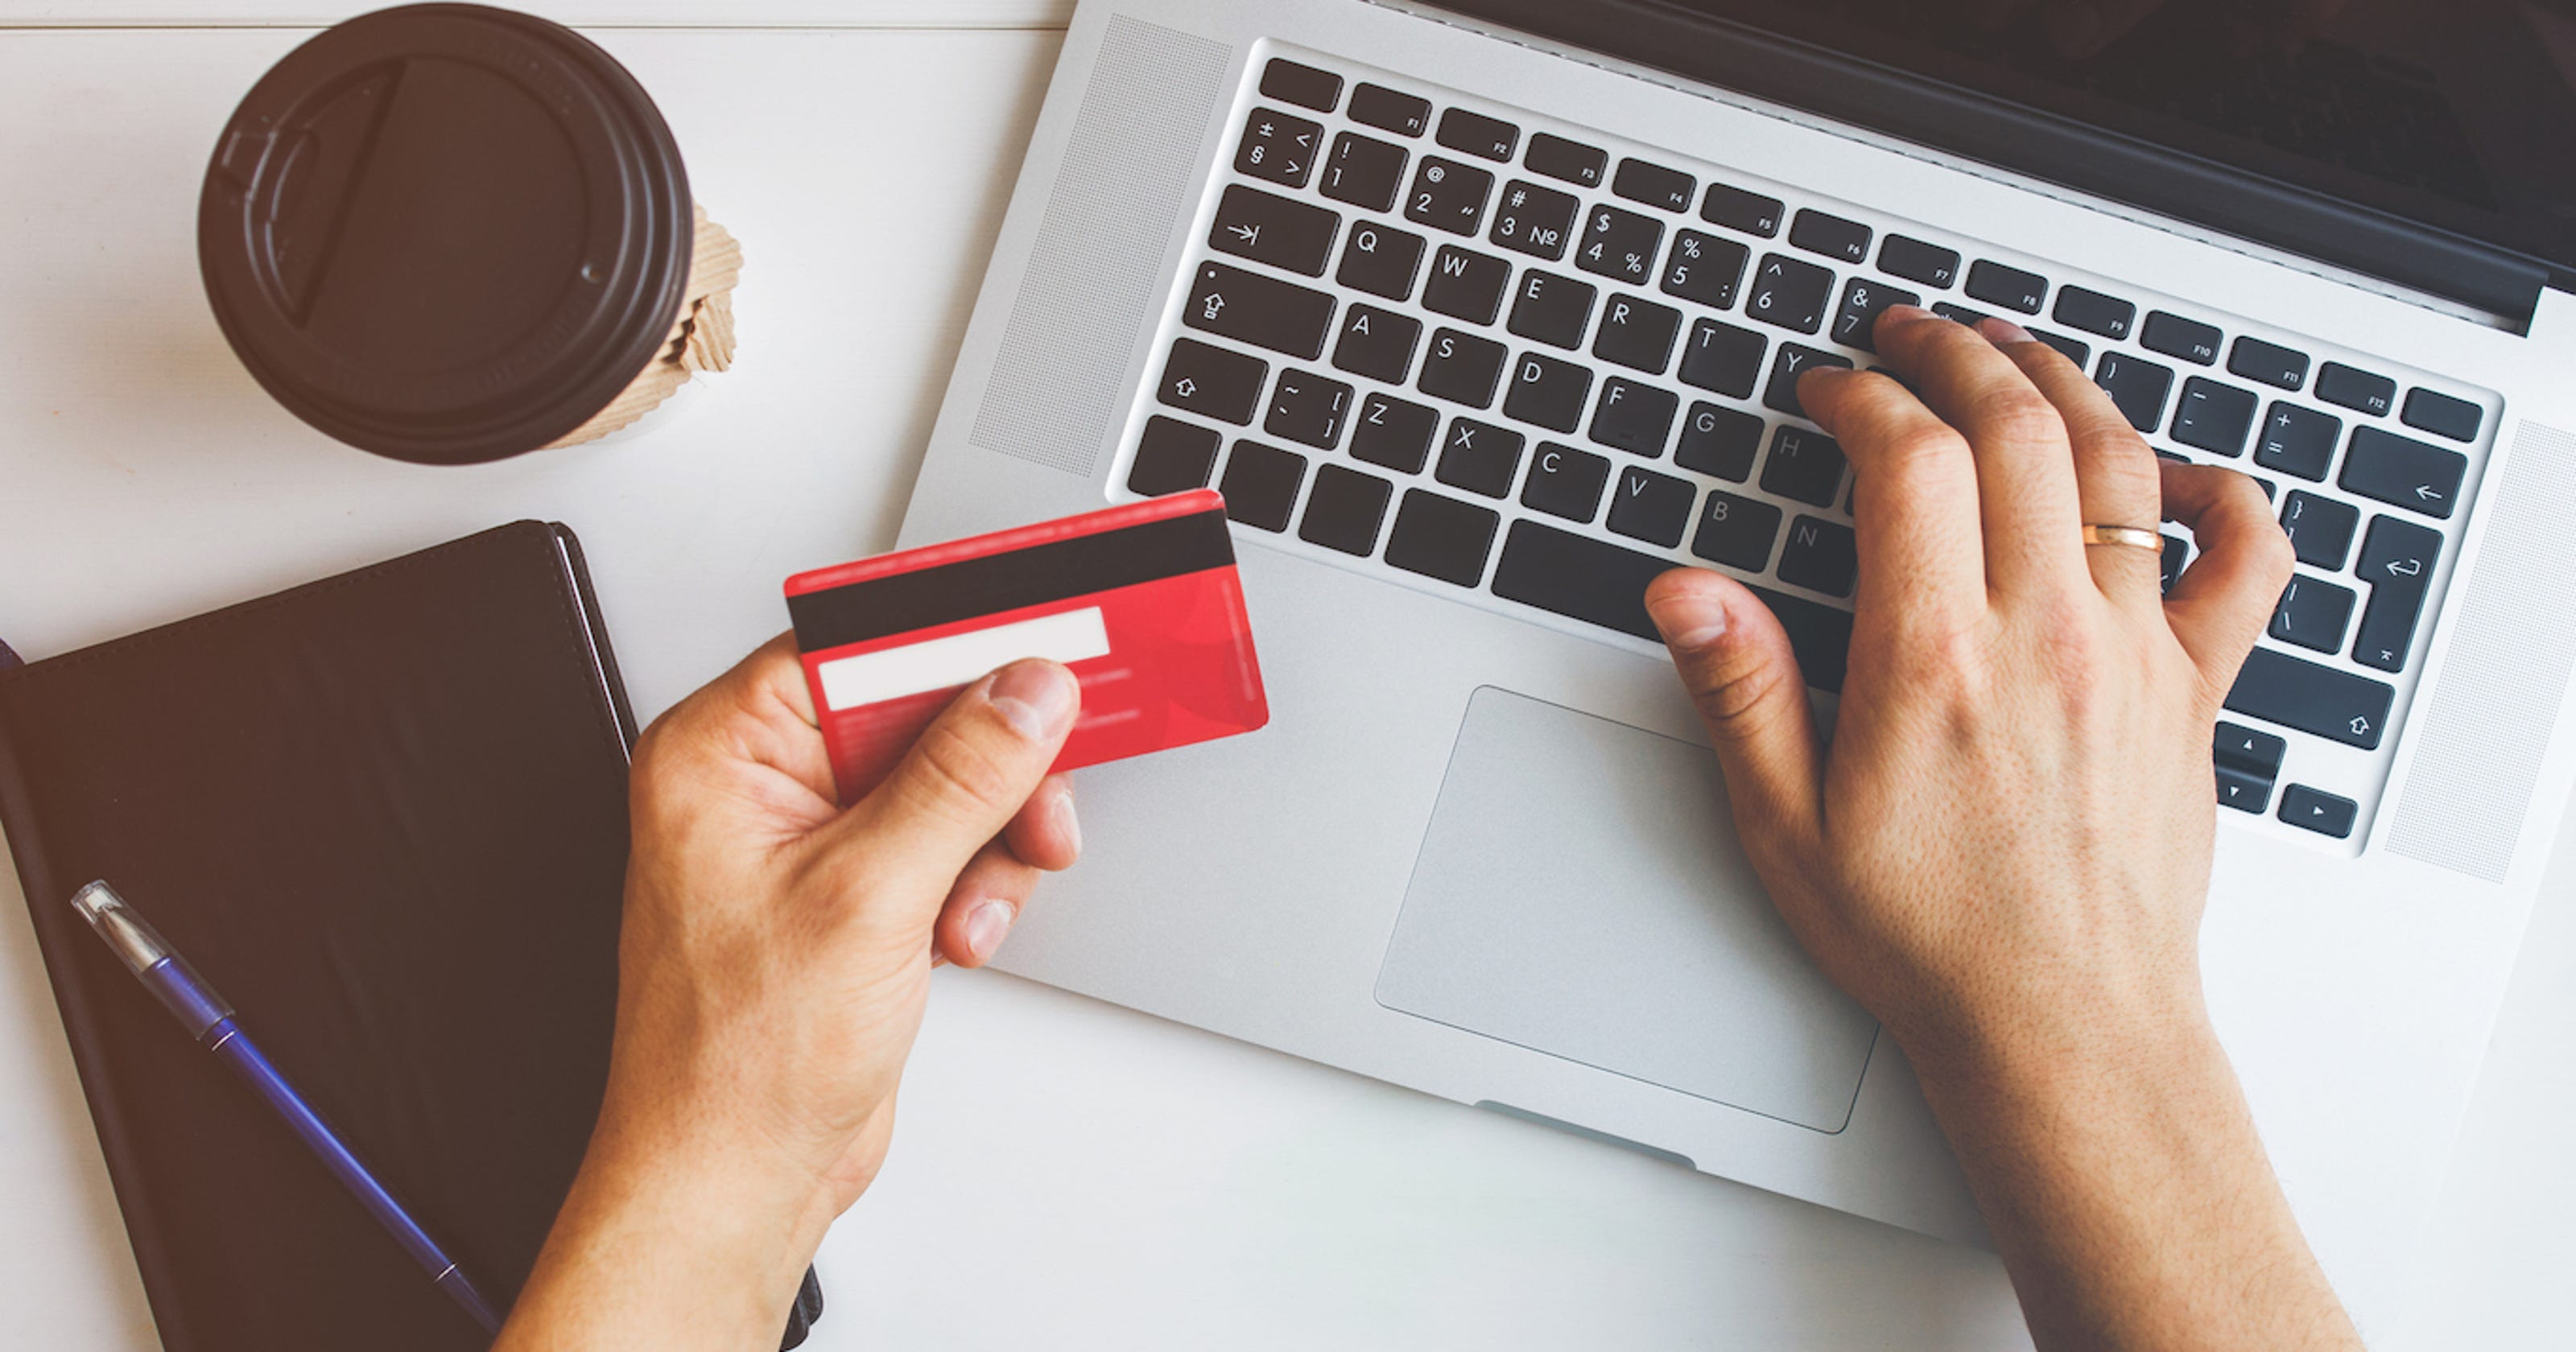 Financing mistakes: 10 ways you should never use your credit card